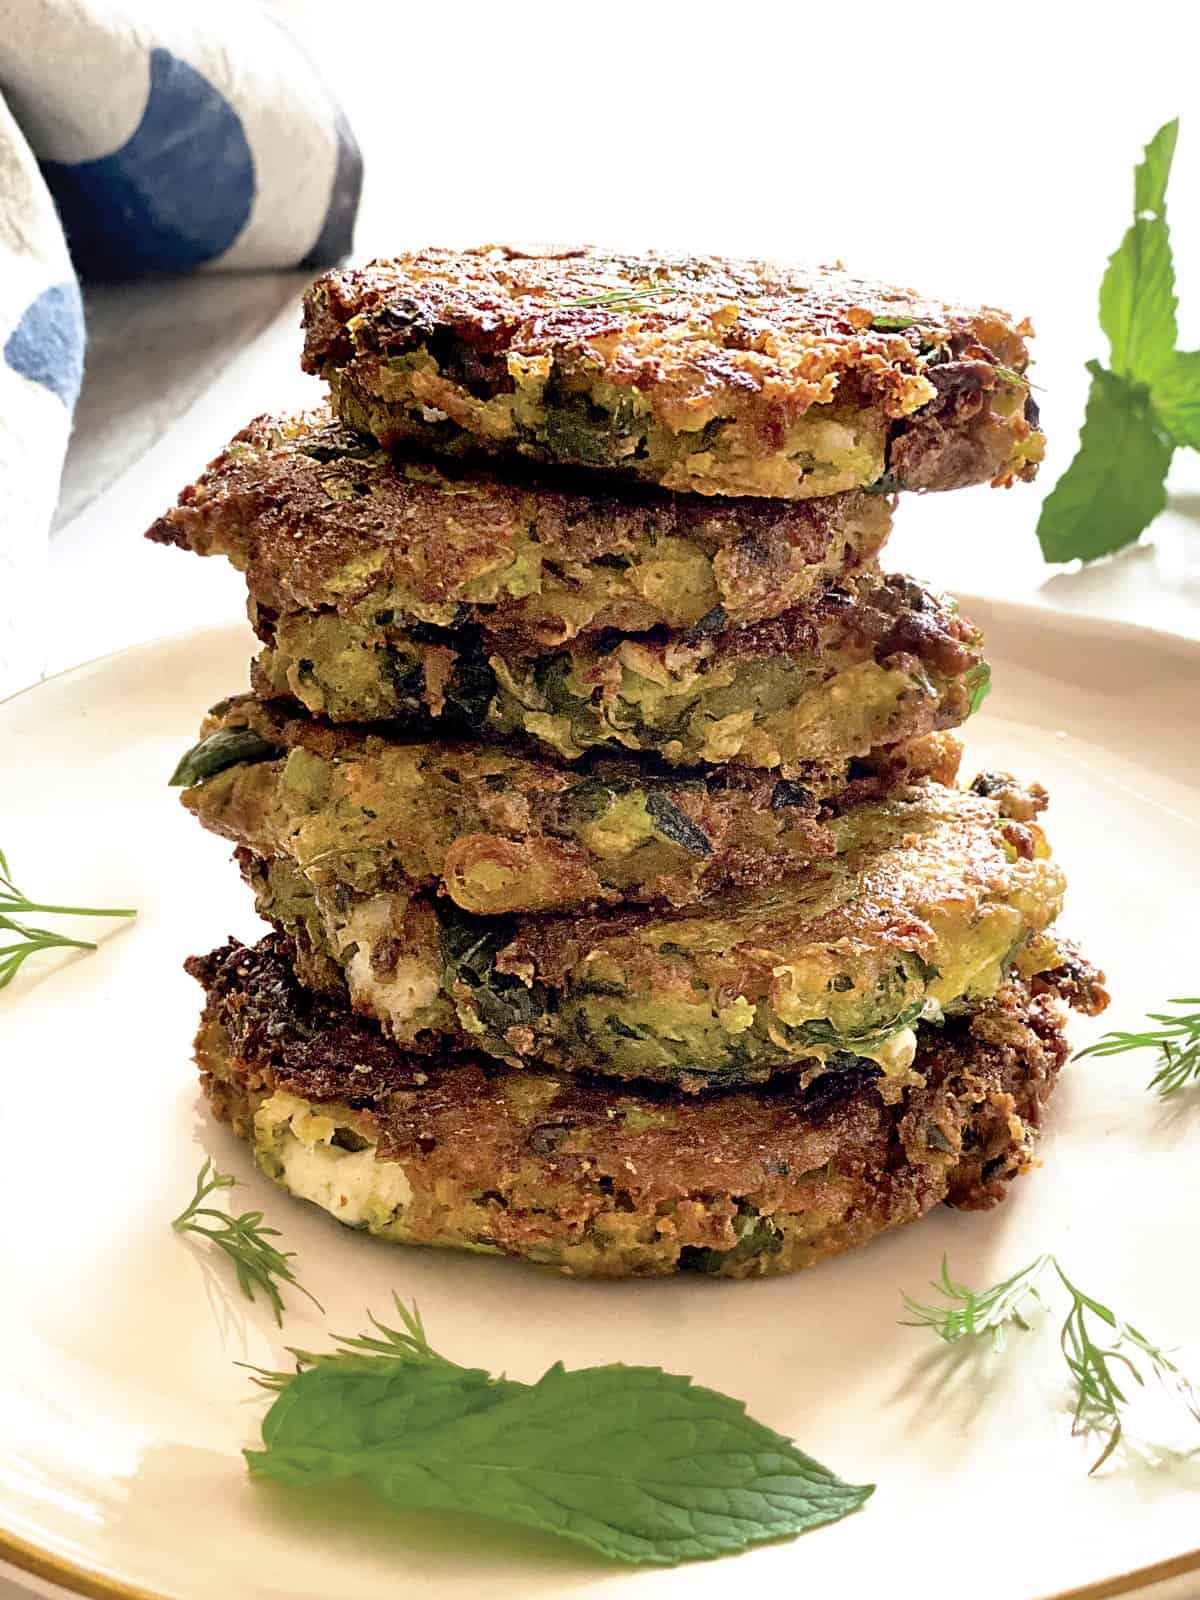 A plate with stacked fritters, at the back a napkin and some herbs.